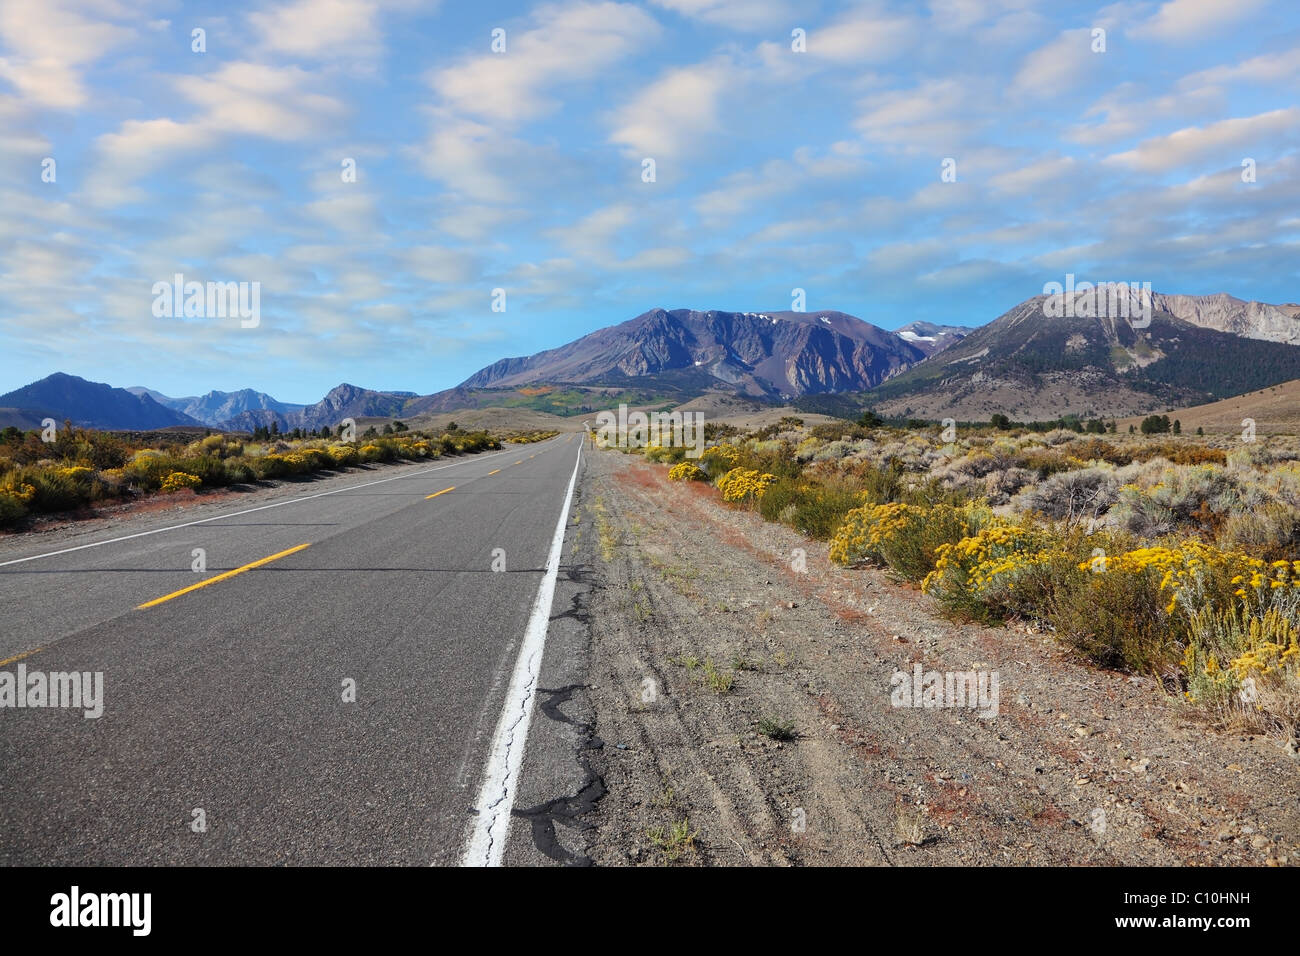 The road goes into the distance. - Stock Image